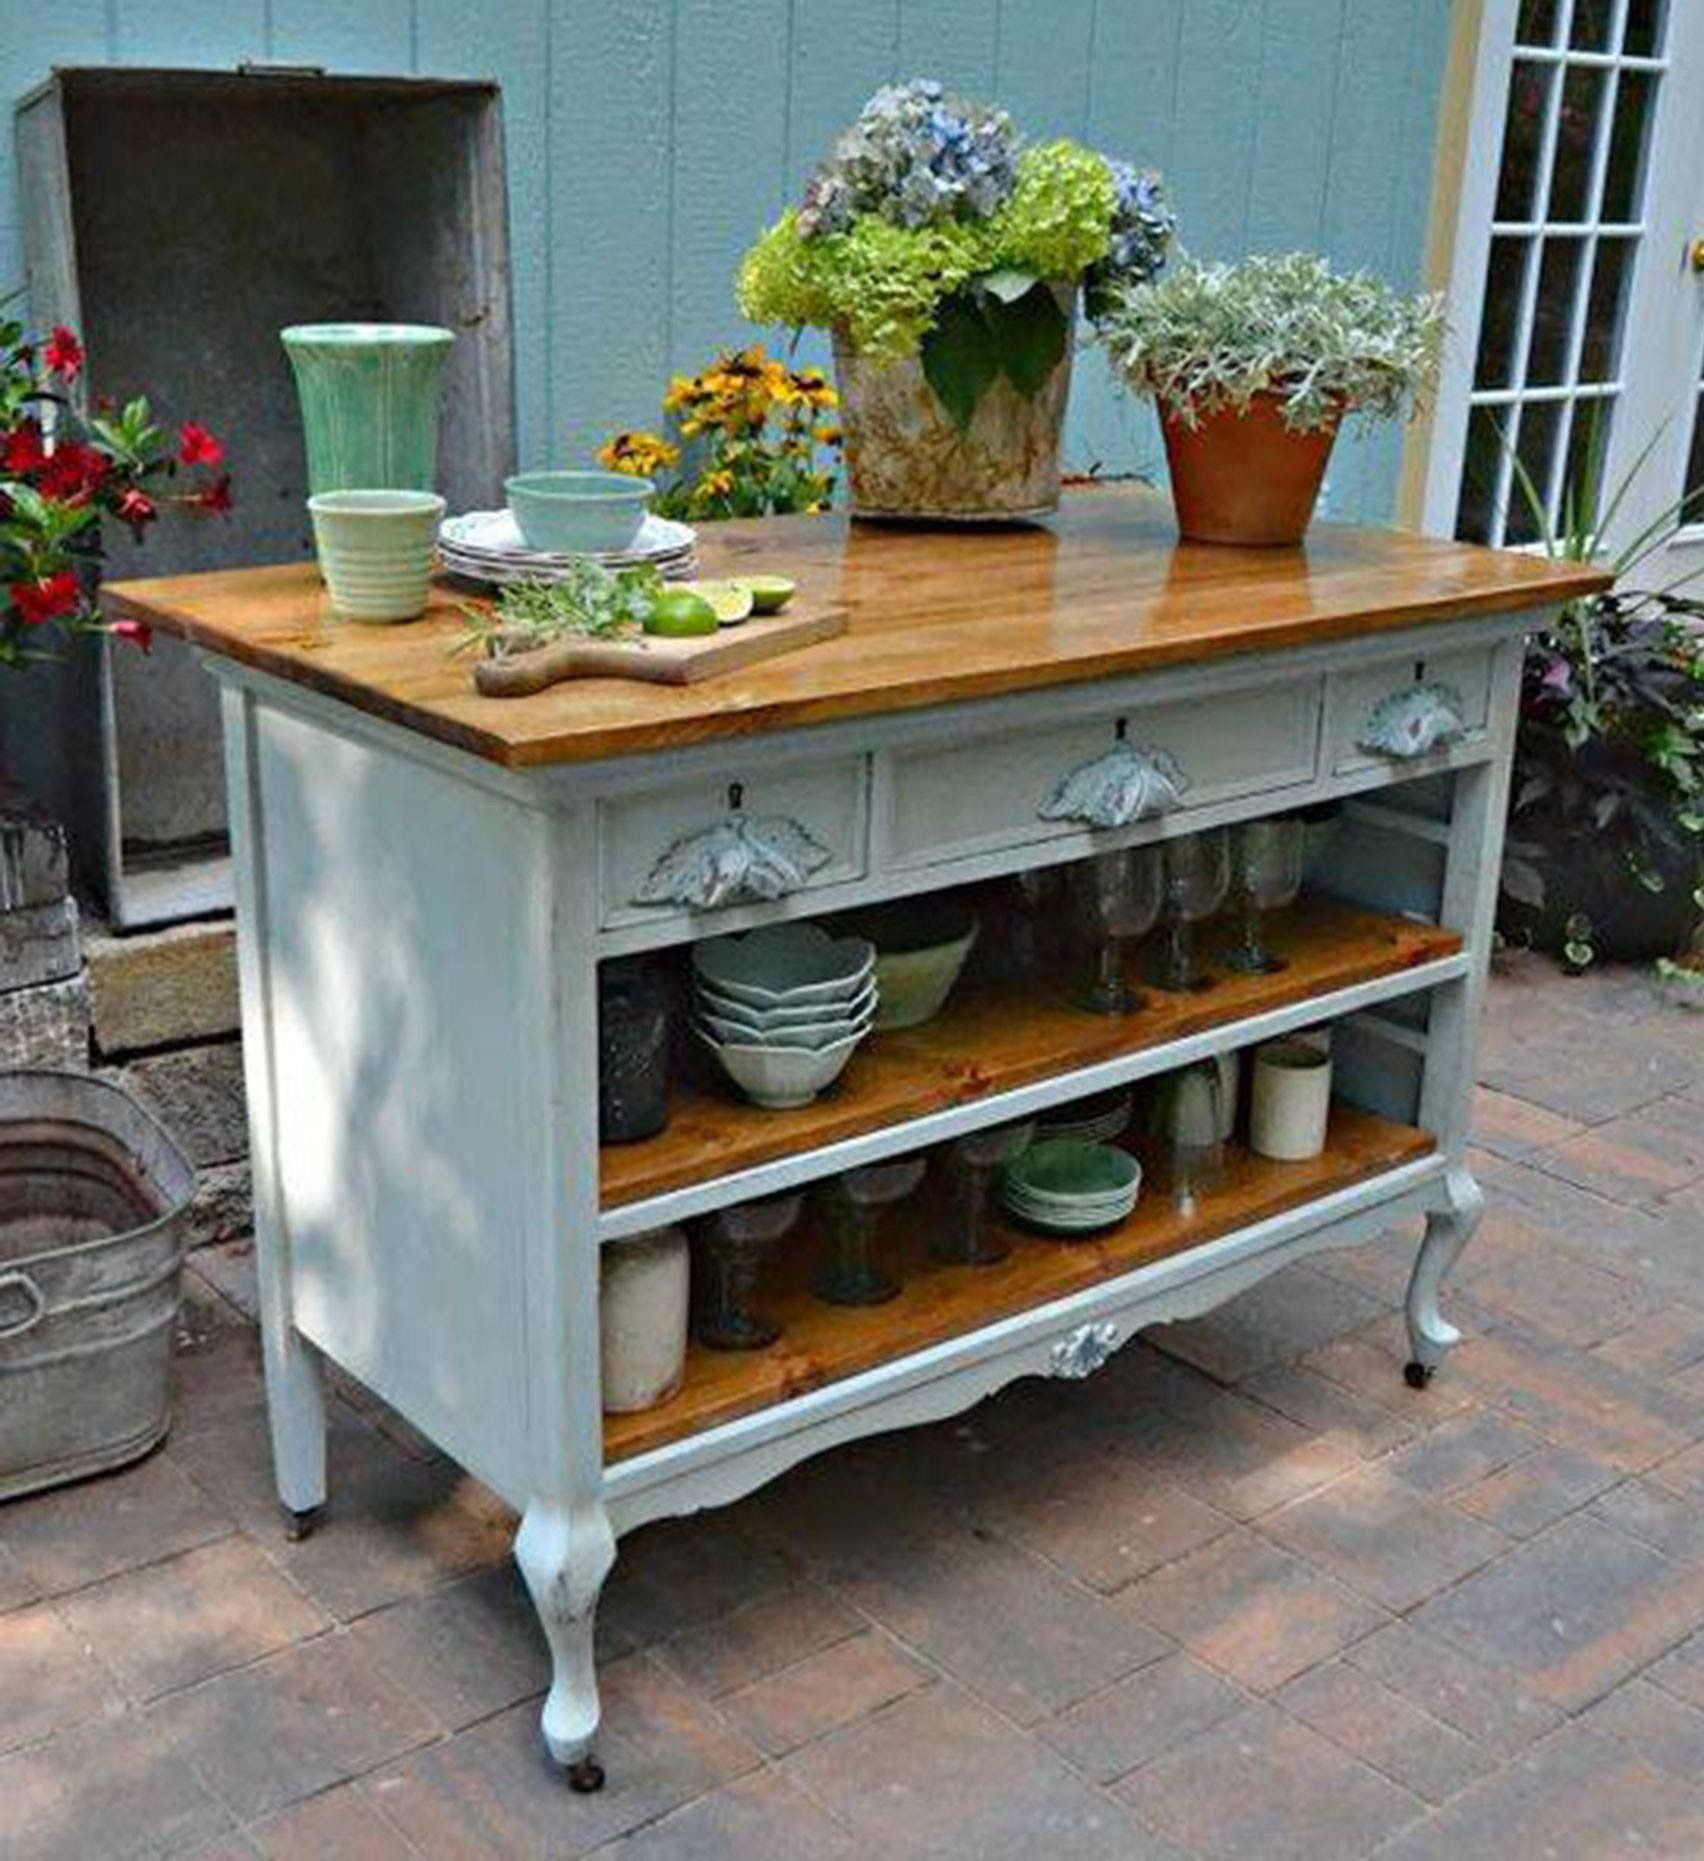 old dresser converted to kitchen island painting. Black Bedroom Furniture Sets. Home Design Ideas